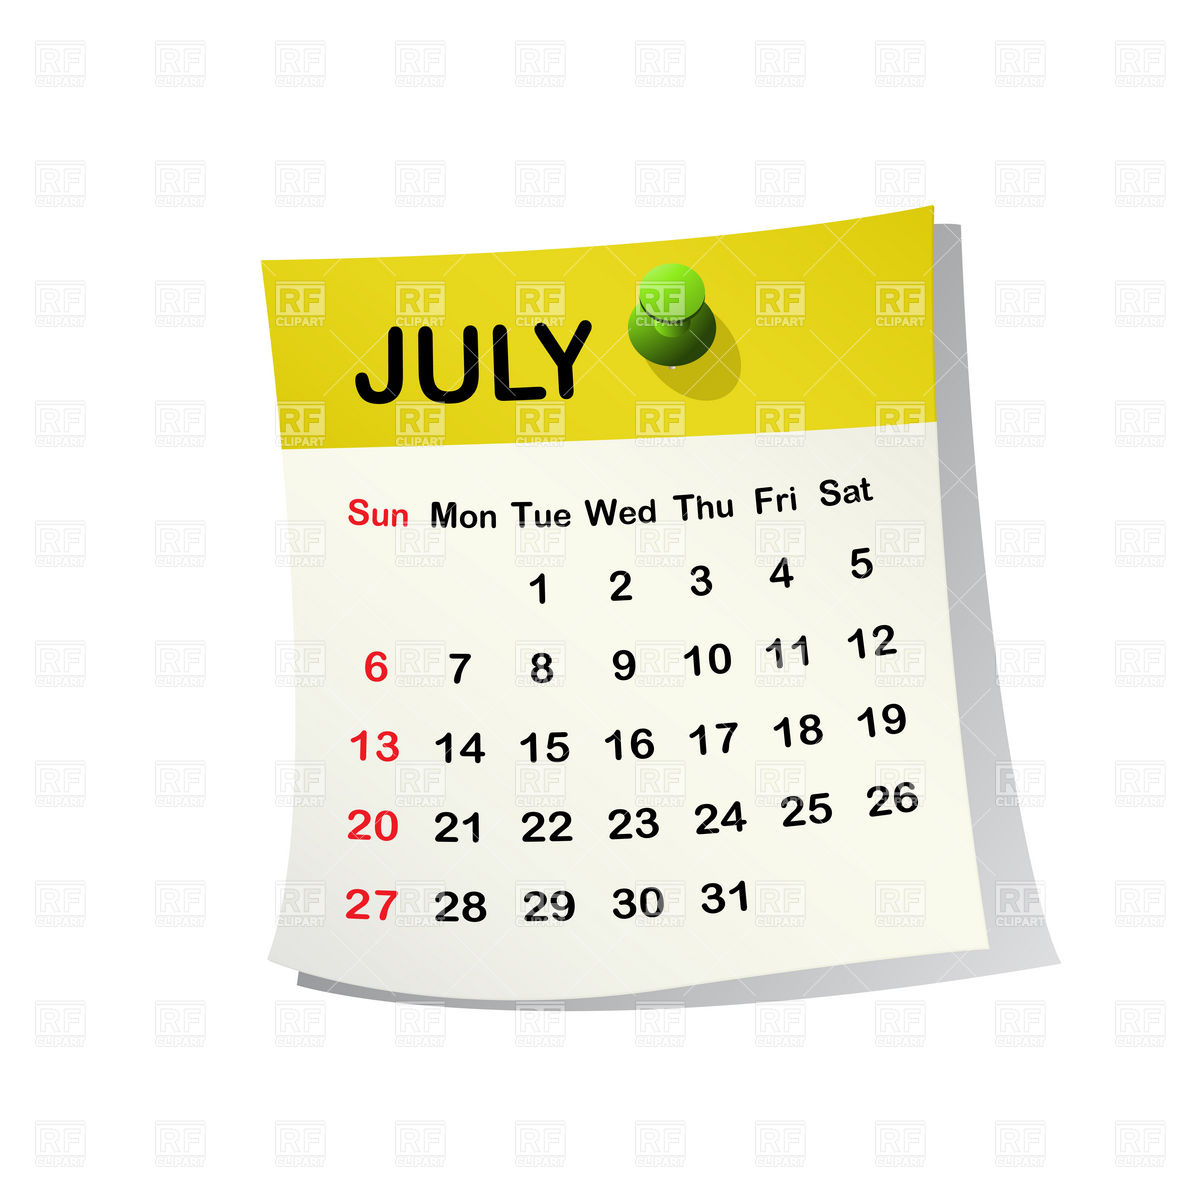 July 2014 Month Calendar 20537 Calendars Layouts Download Royalty